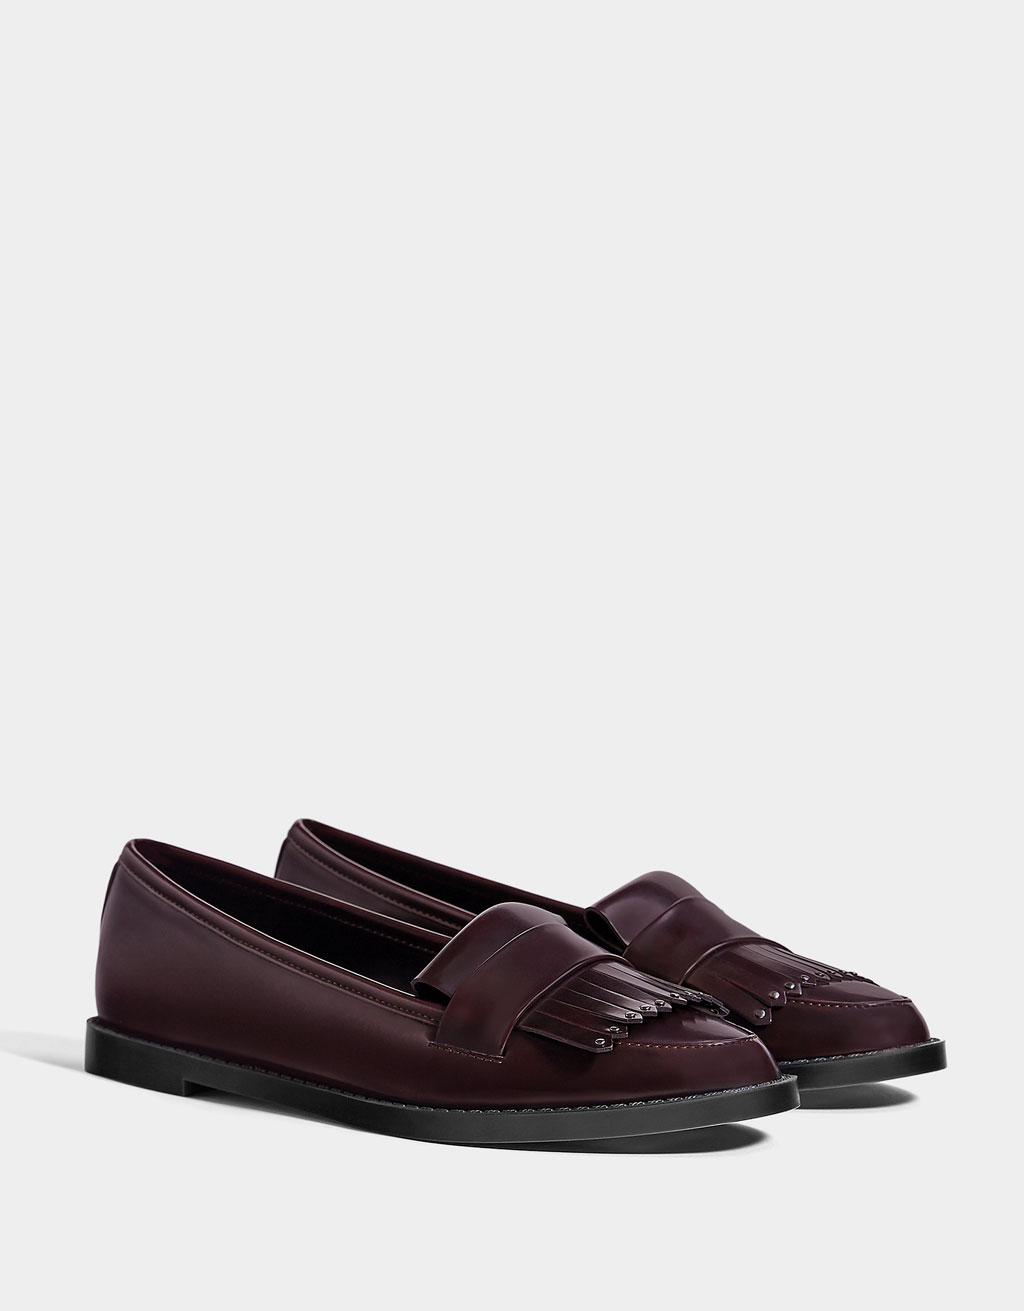 new release on feet images of popular design Burgundy loafers